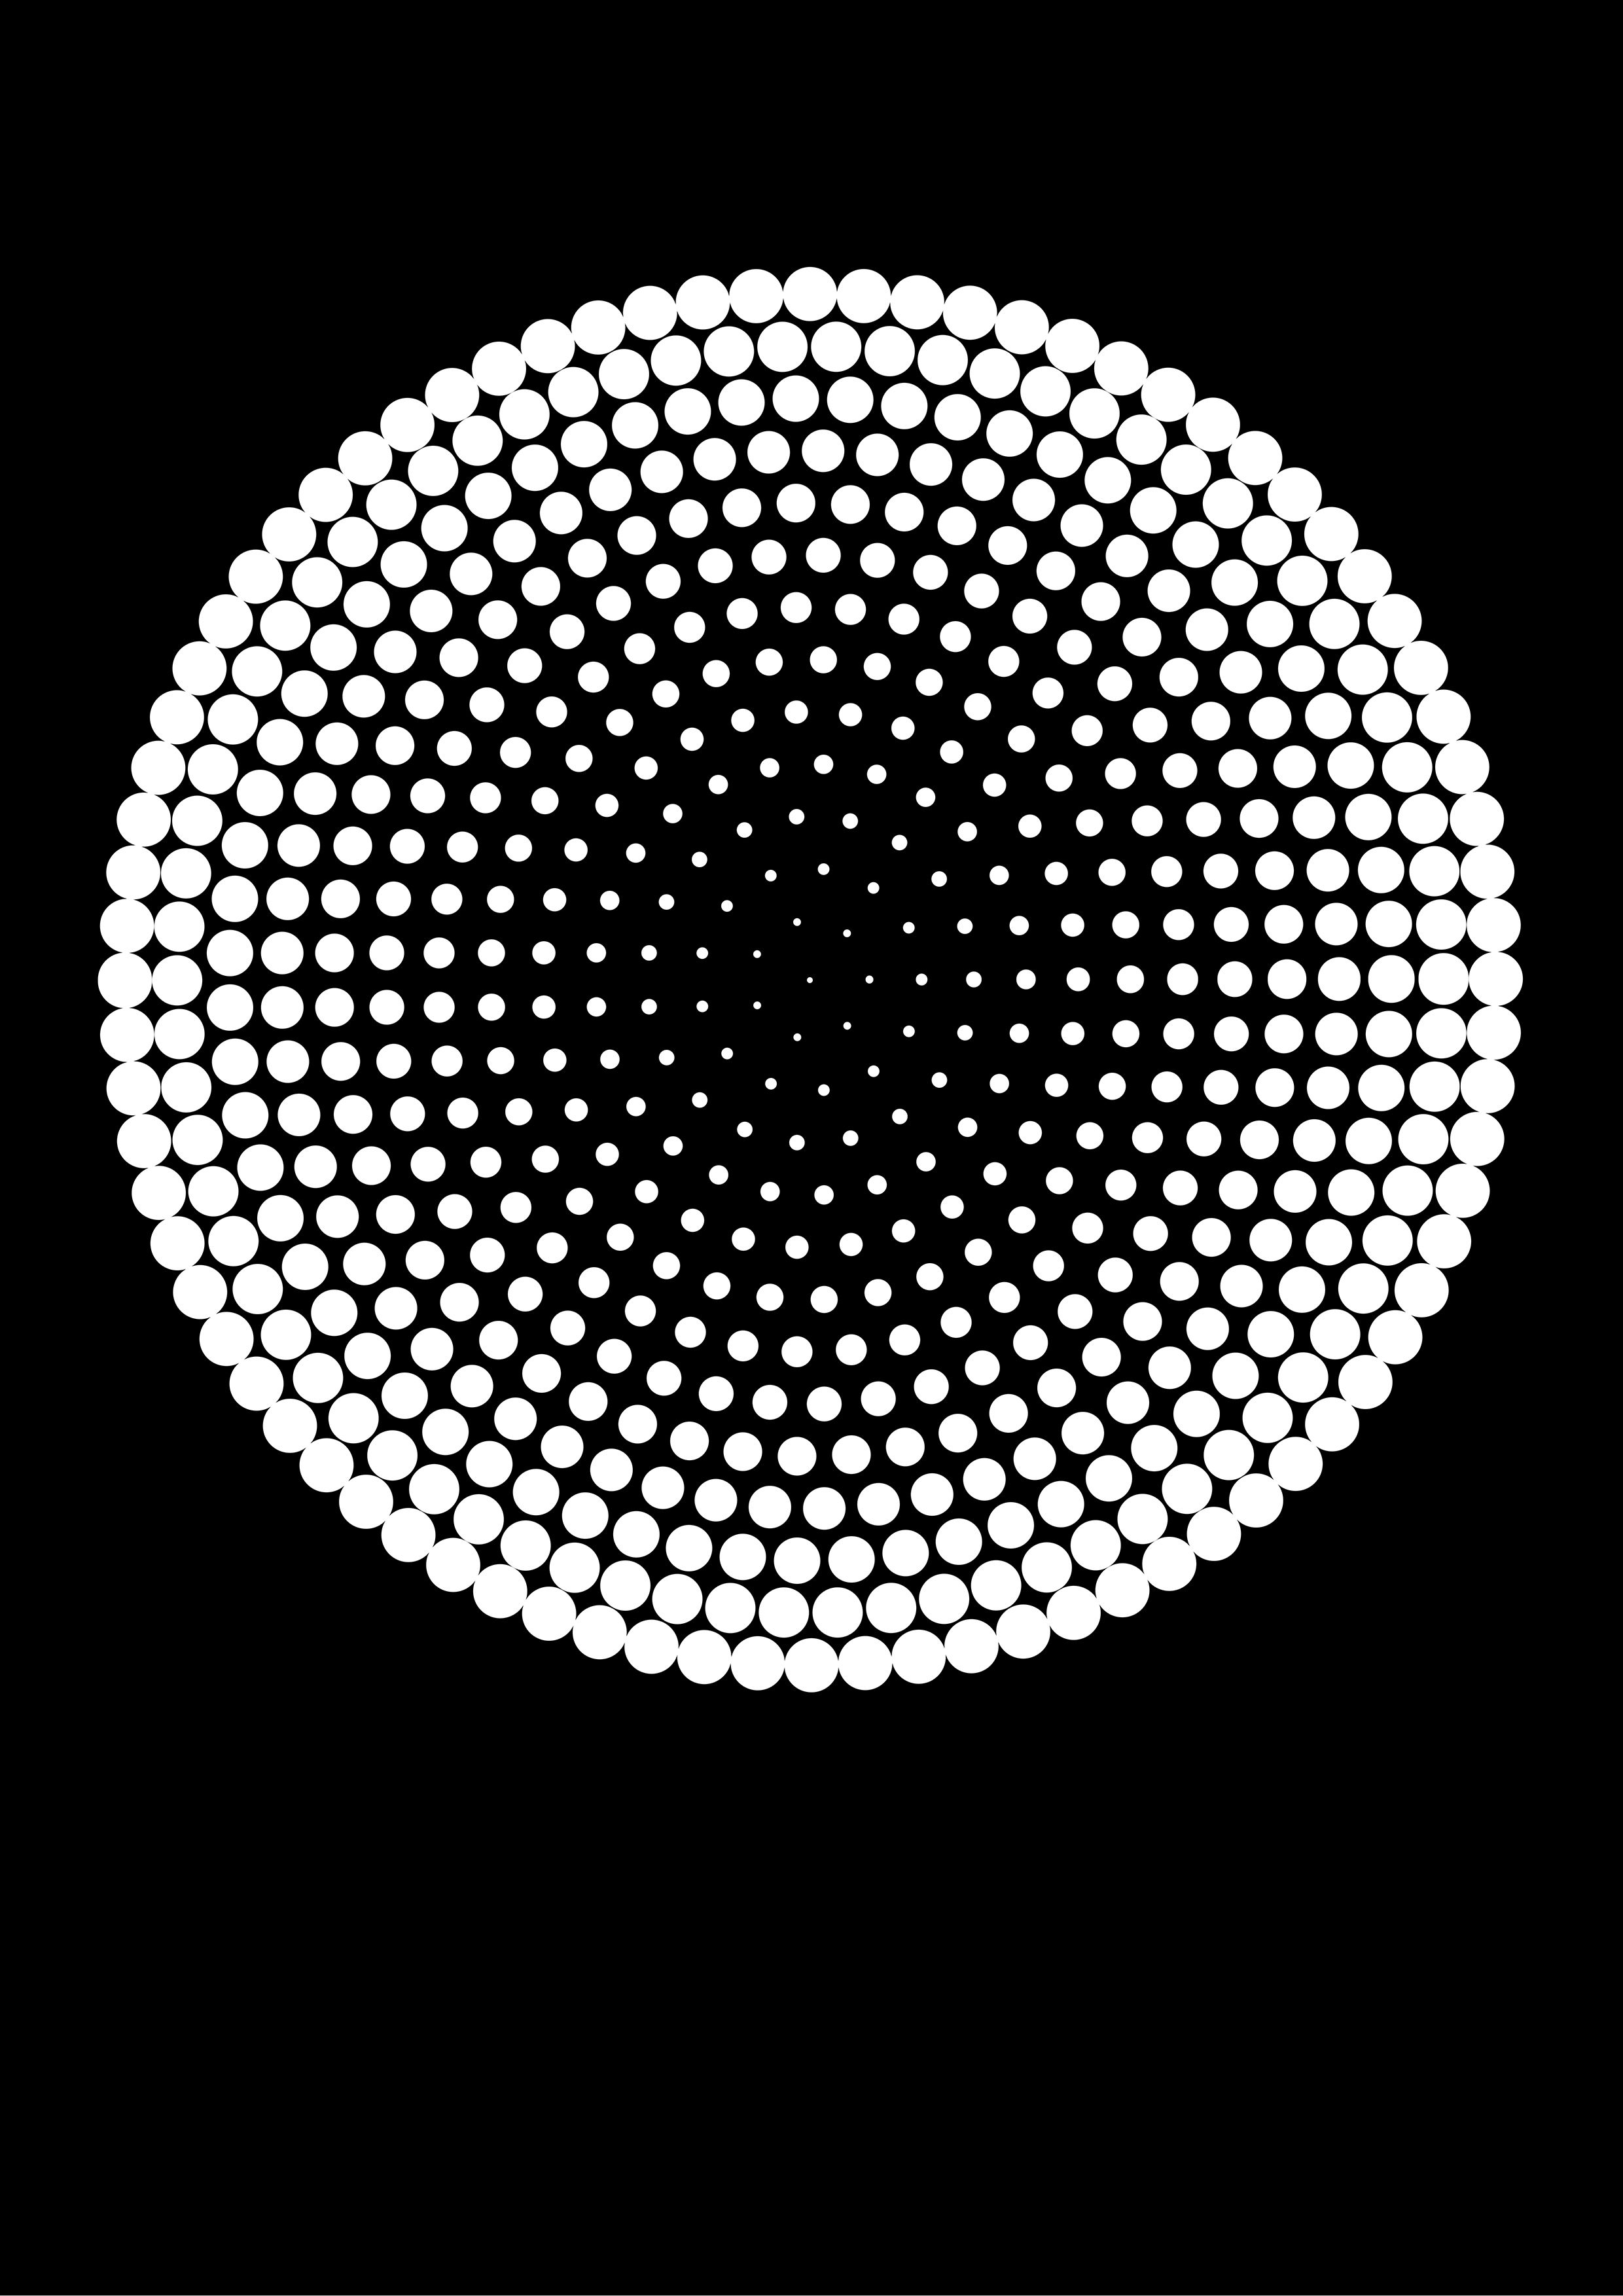 What Is Radial Balance In Art: Pin By Simon Telezhkin On Patterns, Textures, Structures